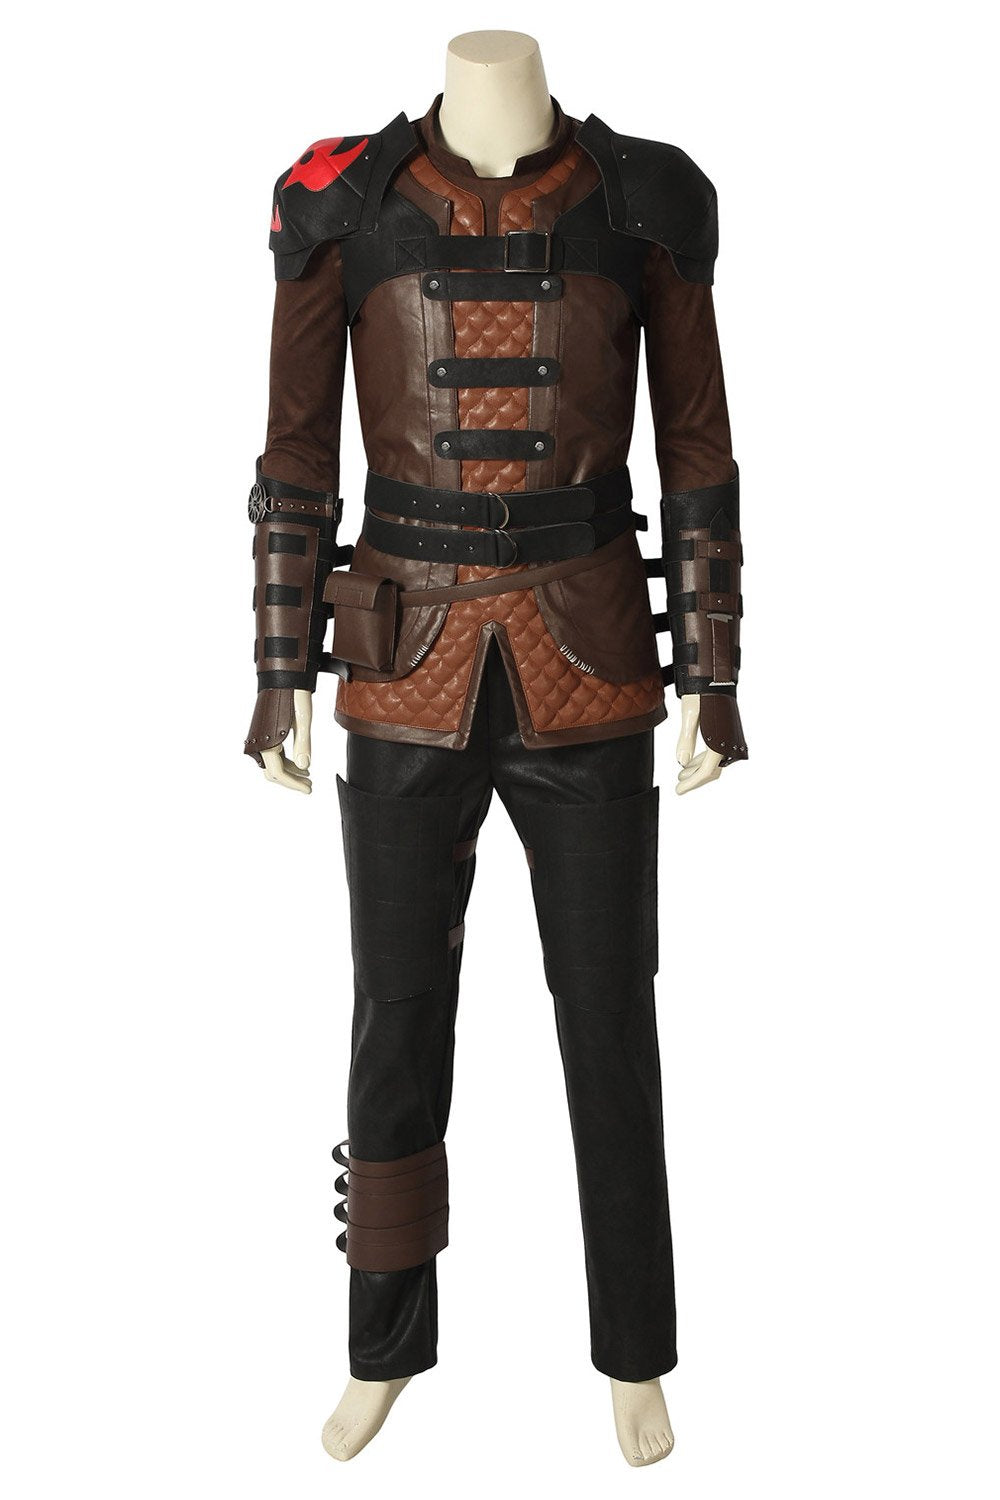 Child How to Train Your Dragon 3 Hiccup Costume Boys Kids The Hidden World New